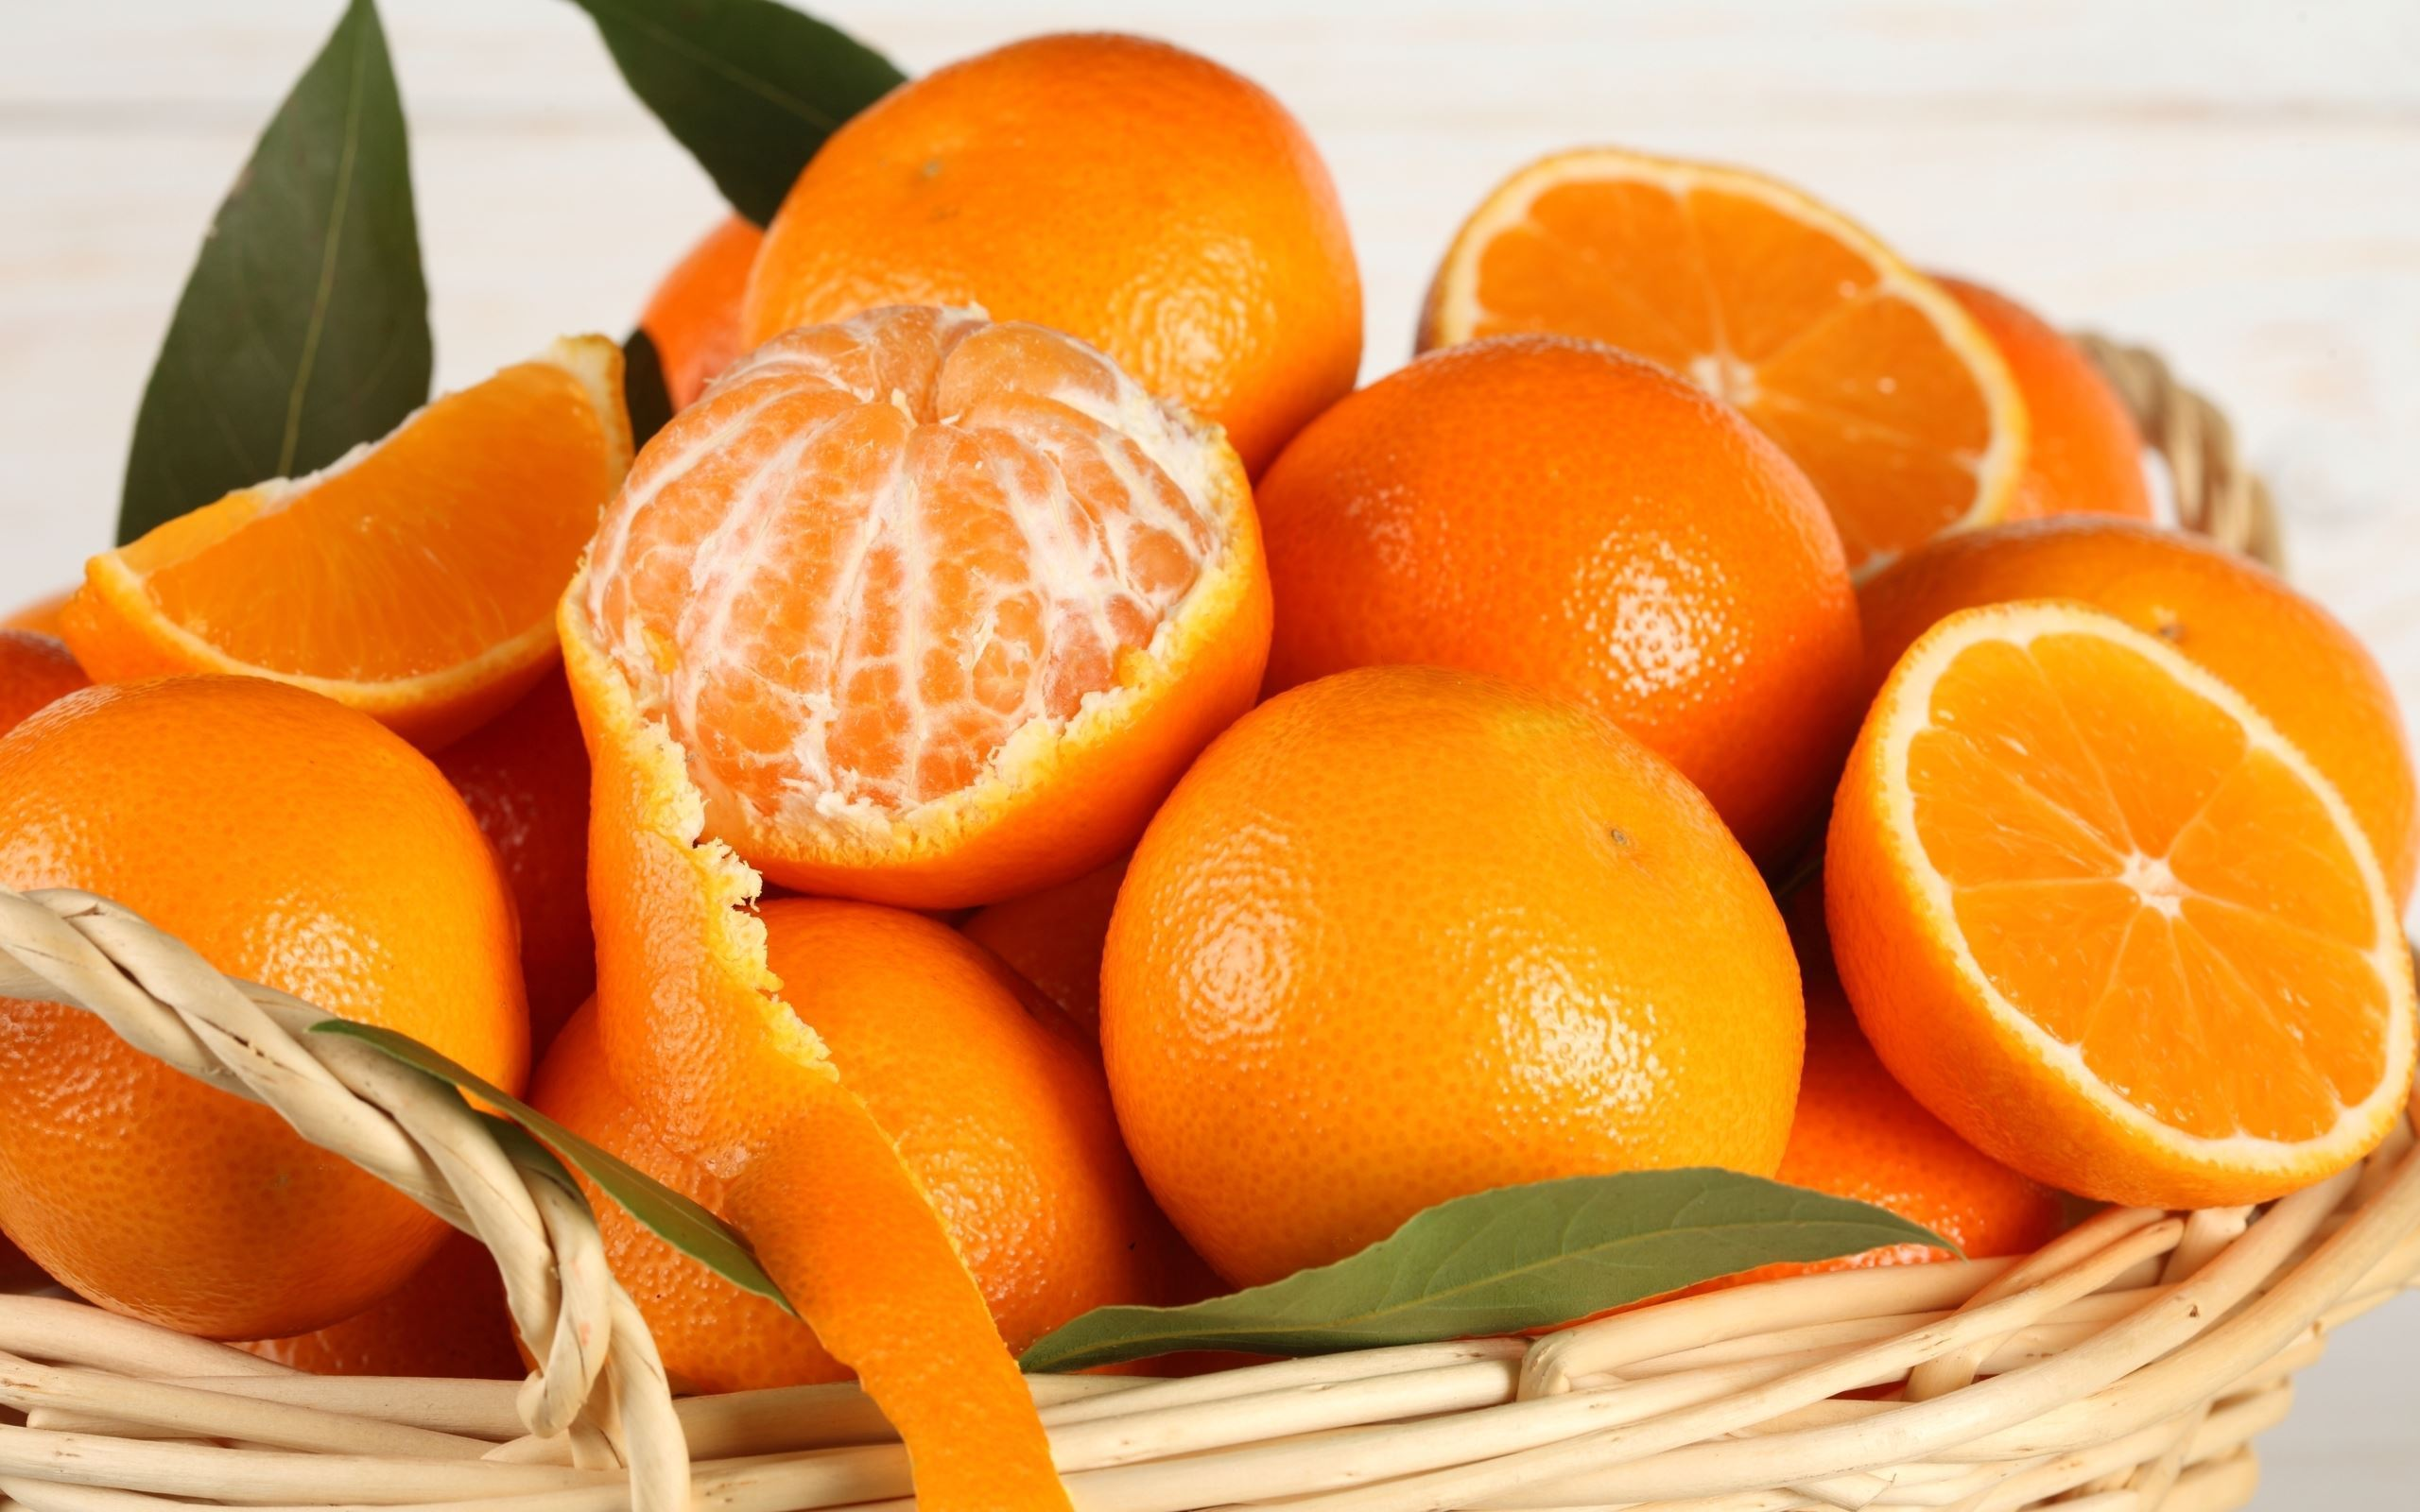 Orange Fruit HD Wallpaper Background Images 2560x1600